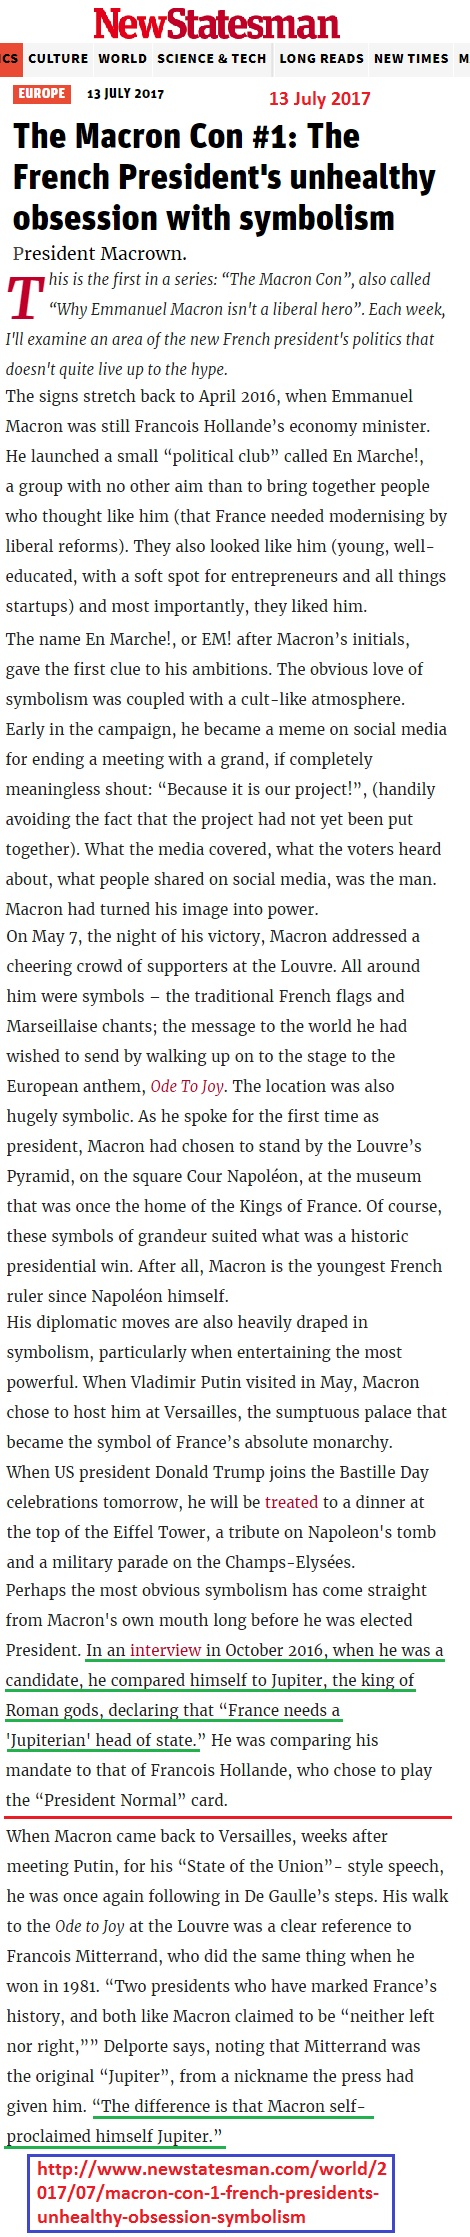 https://www.newstatesman.com/world/2017/07/macron-con-1-french-presidents-unhealthy-obsession-symbolism